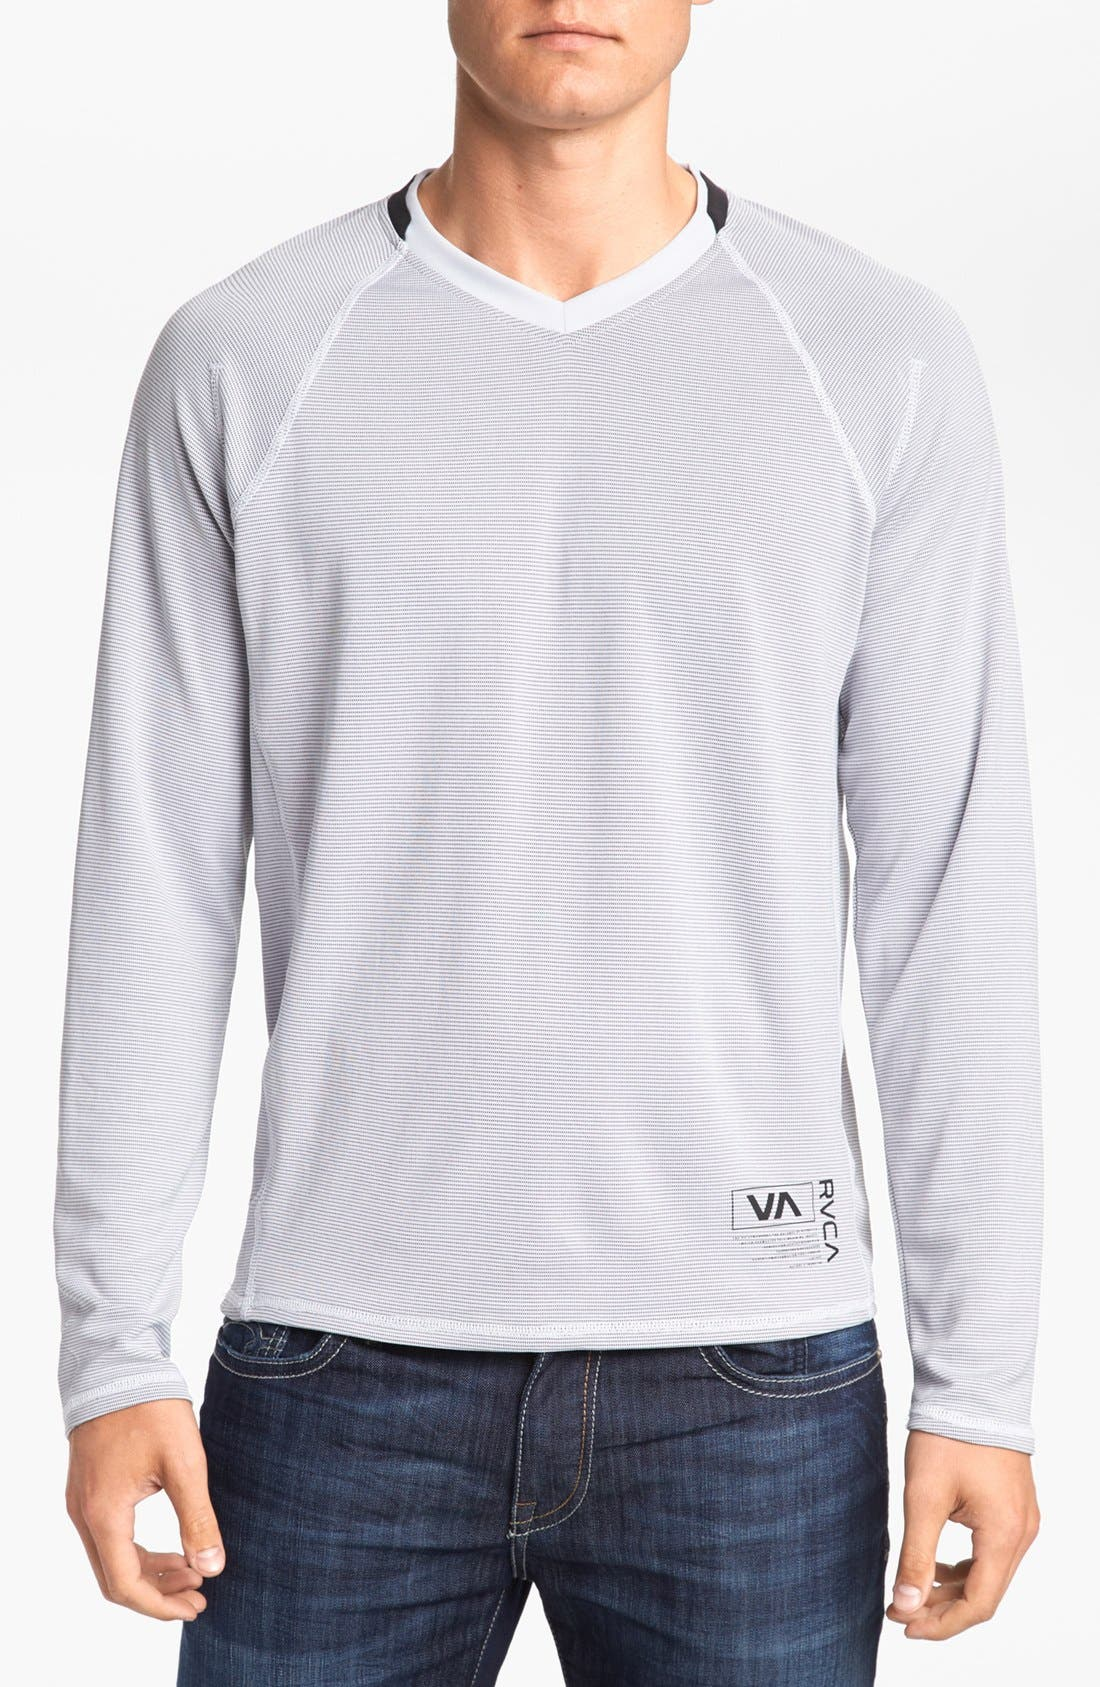 Alternate Image 1 Selected - RVCA 'Fraction' Long Sleeve V-Neck T-Shirt